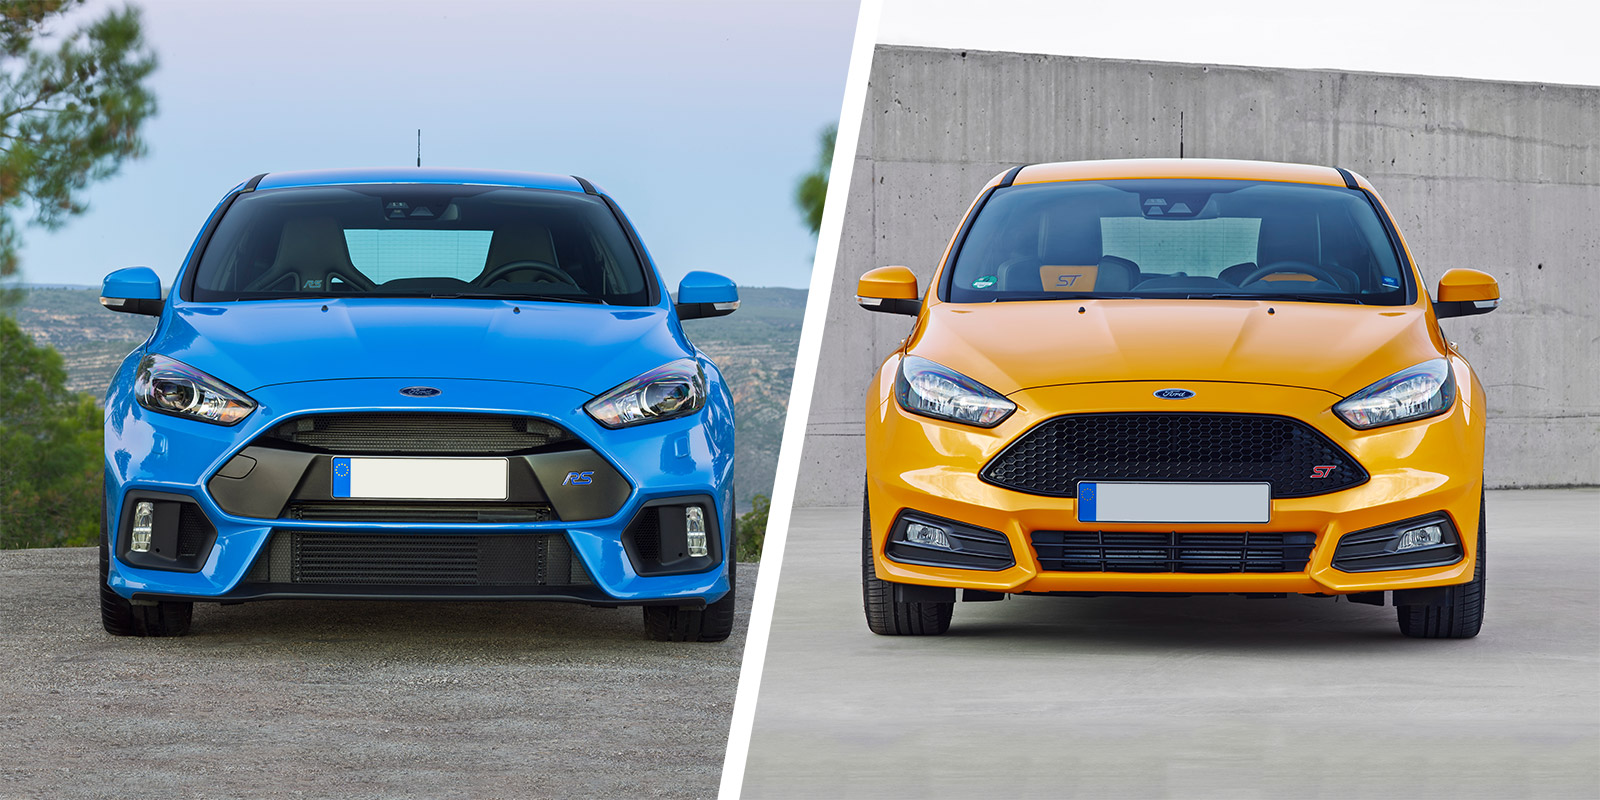 Ford Focus Rs Vs Focus St Hot Hatches Compared Carwow